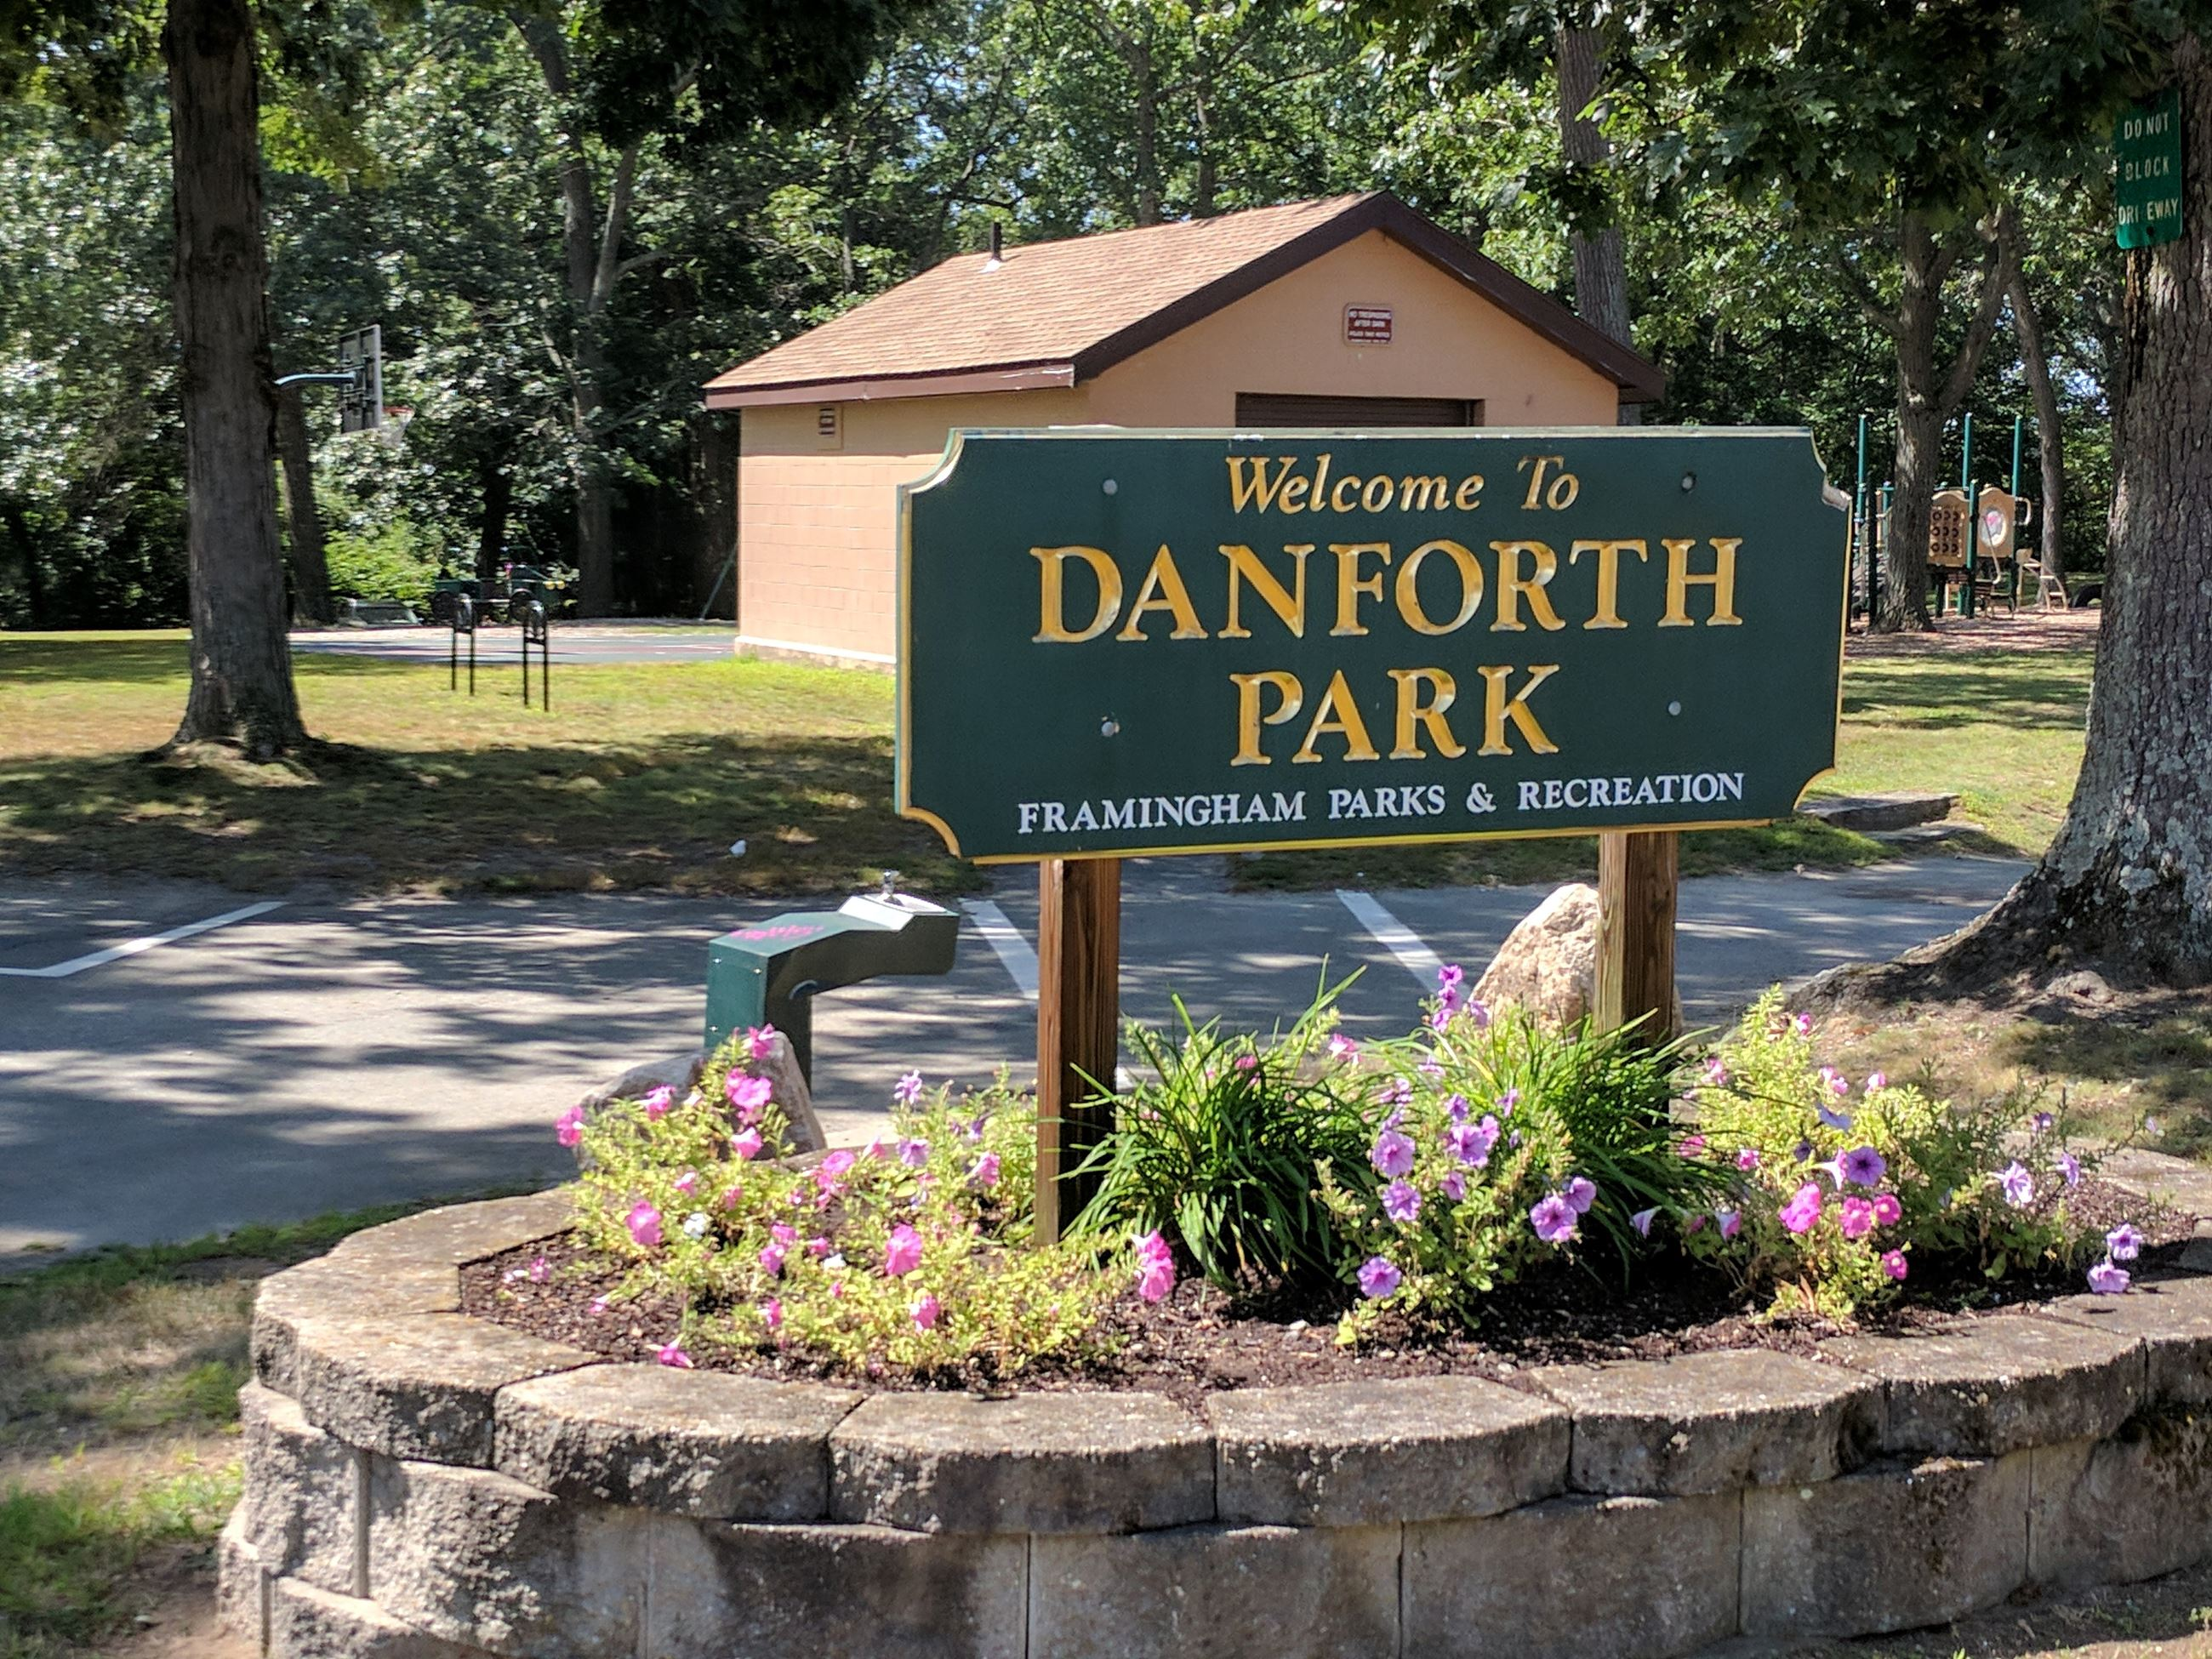 Danforth Park